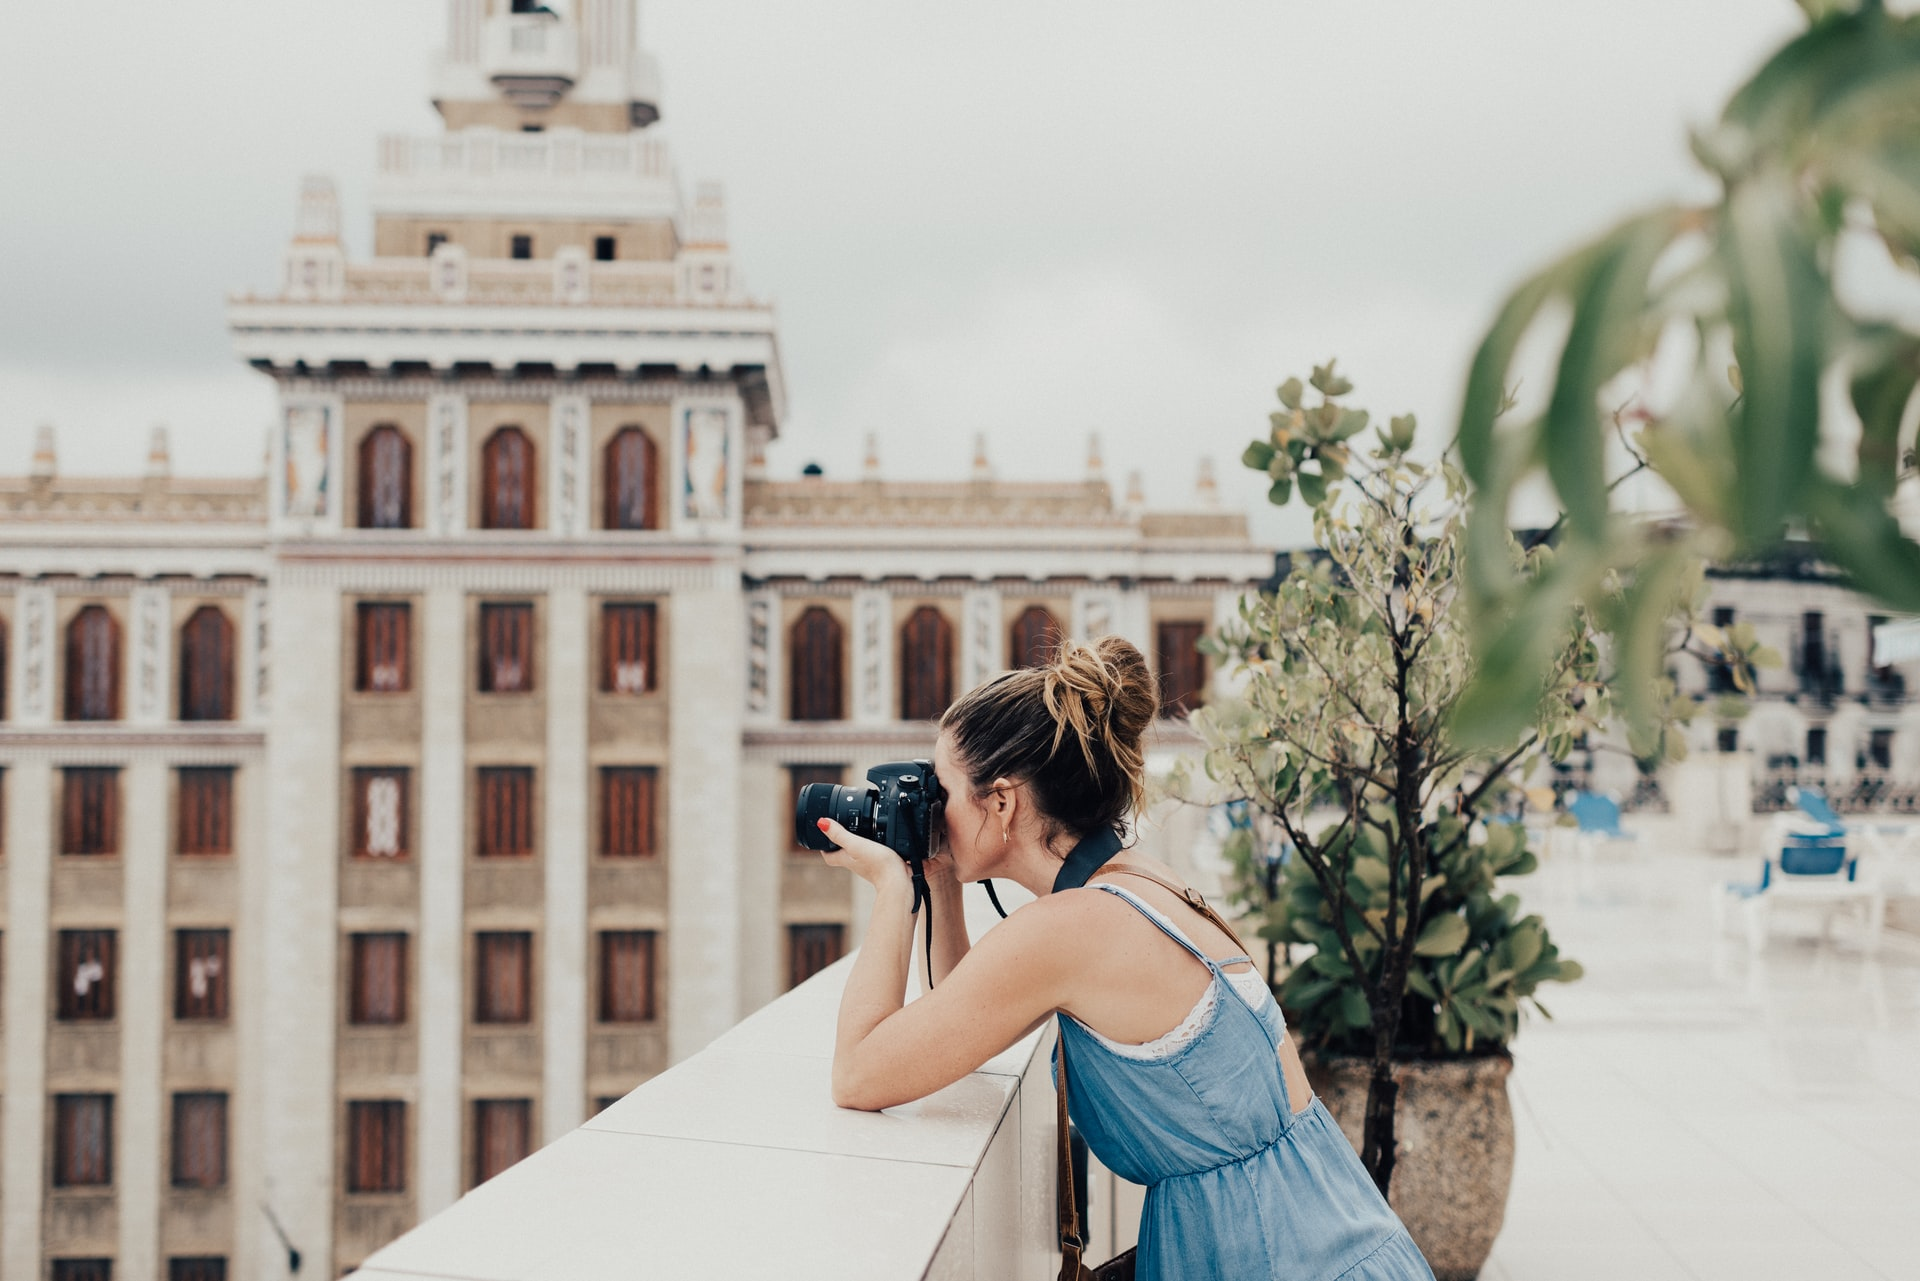 travel photographer taking scenic photo with DSLR camera